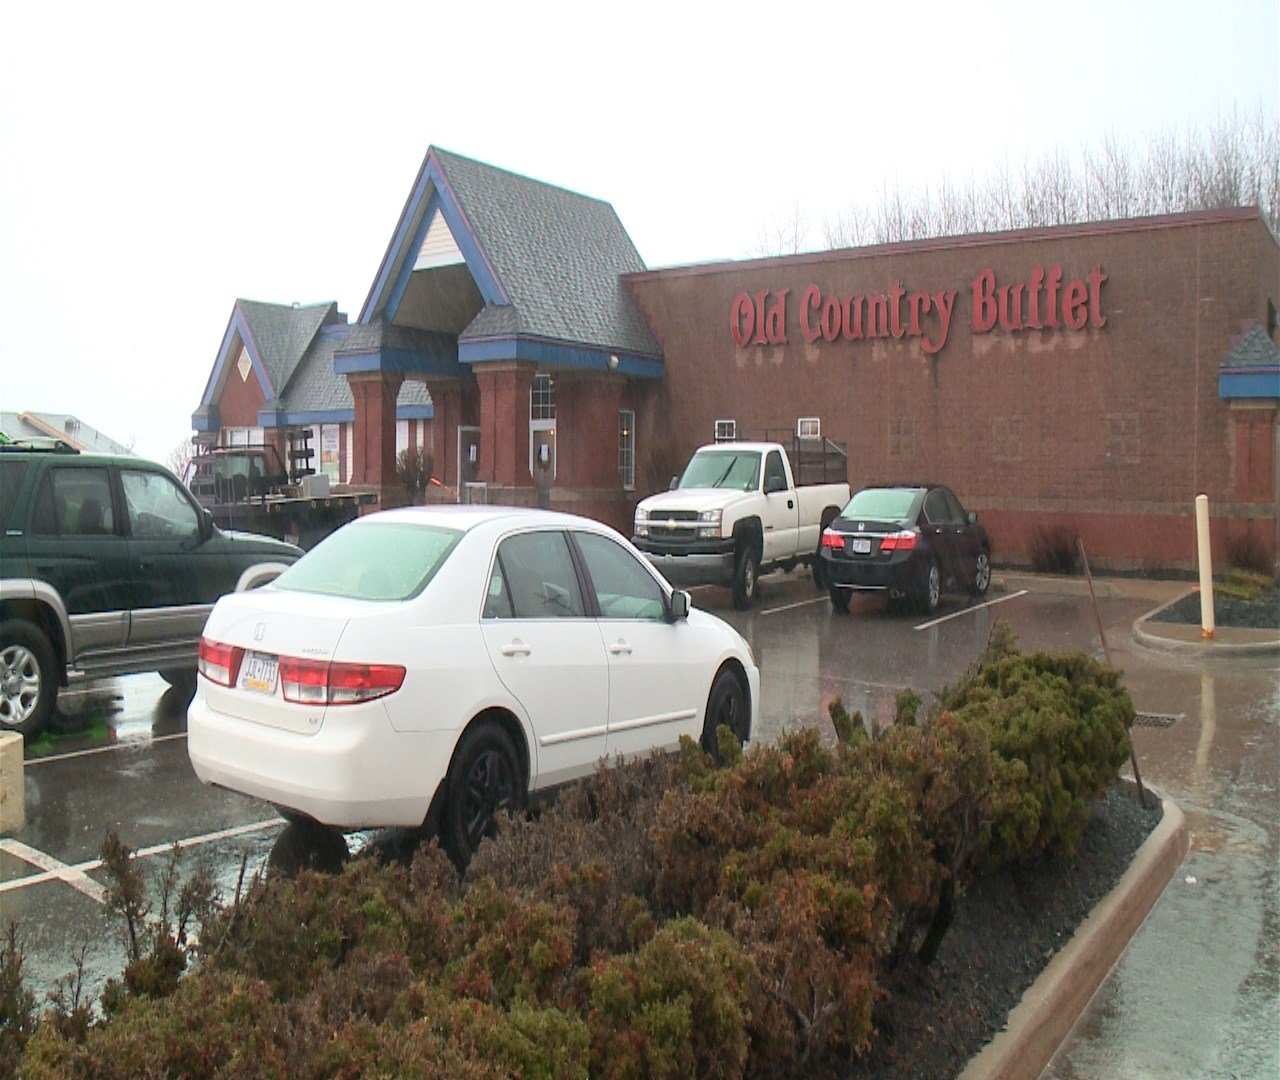 Nov 27,  · Golden Corral, Erie: See unbiased reviews of Golden Corral, rated of 5 on TripAdvisor and ranked # of restaurants in Erie. The buffet is great. We stop here in Erie when we are on our way south. The staff is very friendly and helpful. The buffet bar has so much to choose from. The location was in Erie PA I am /5().